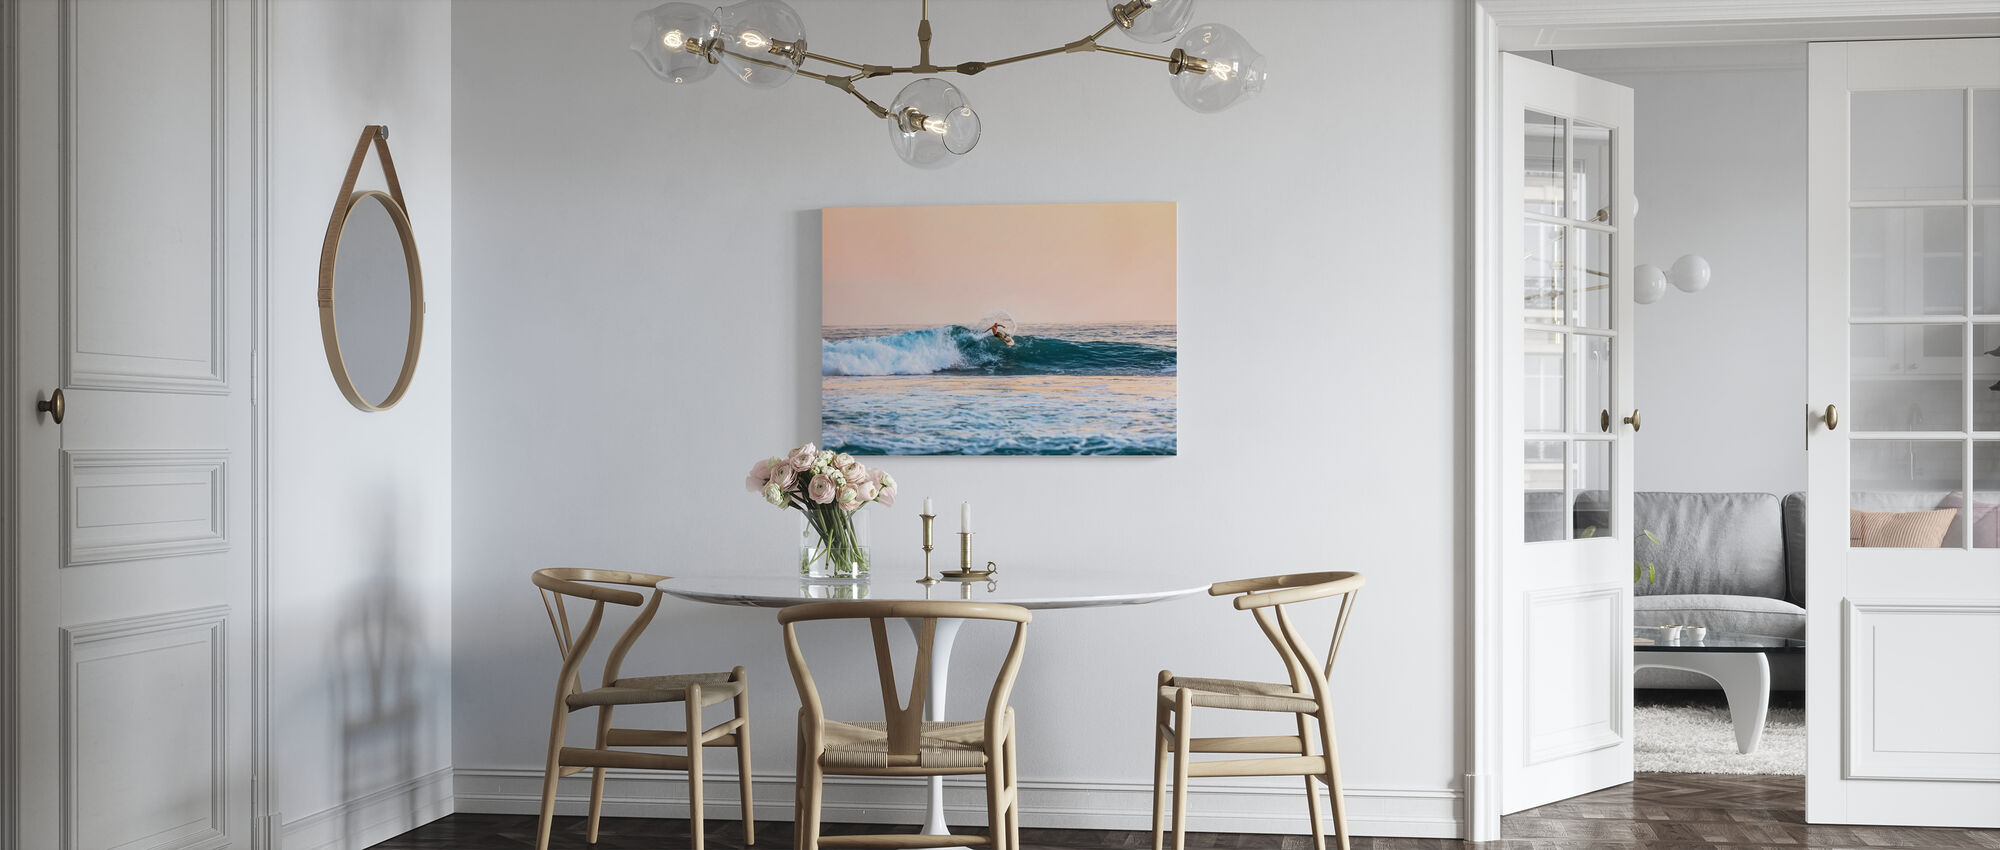 Surfing - Canvas print - Kitchen